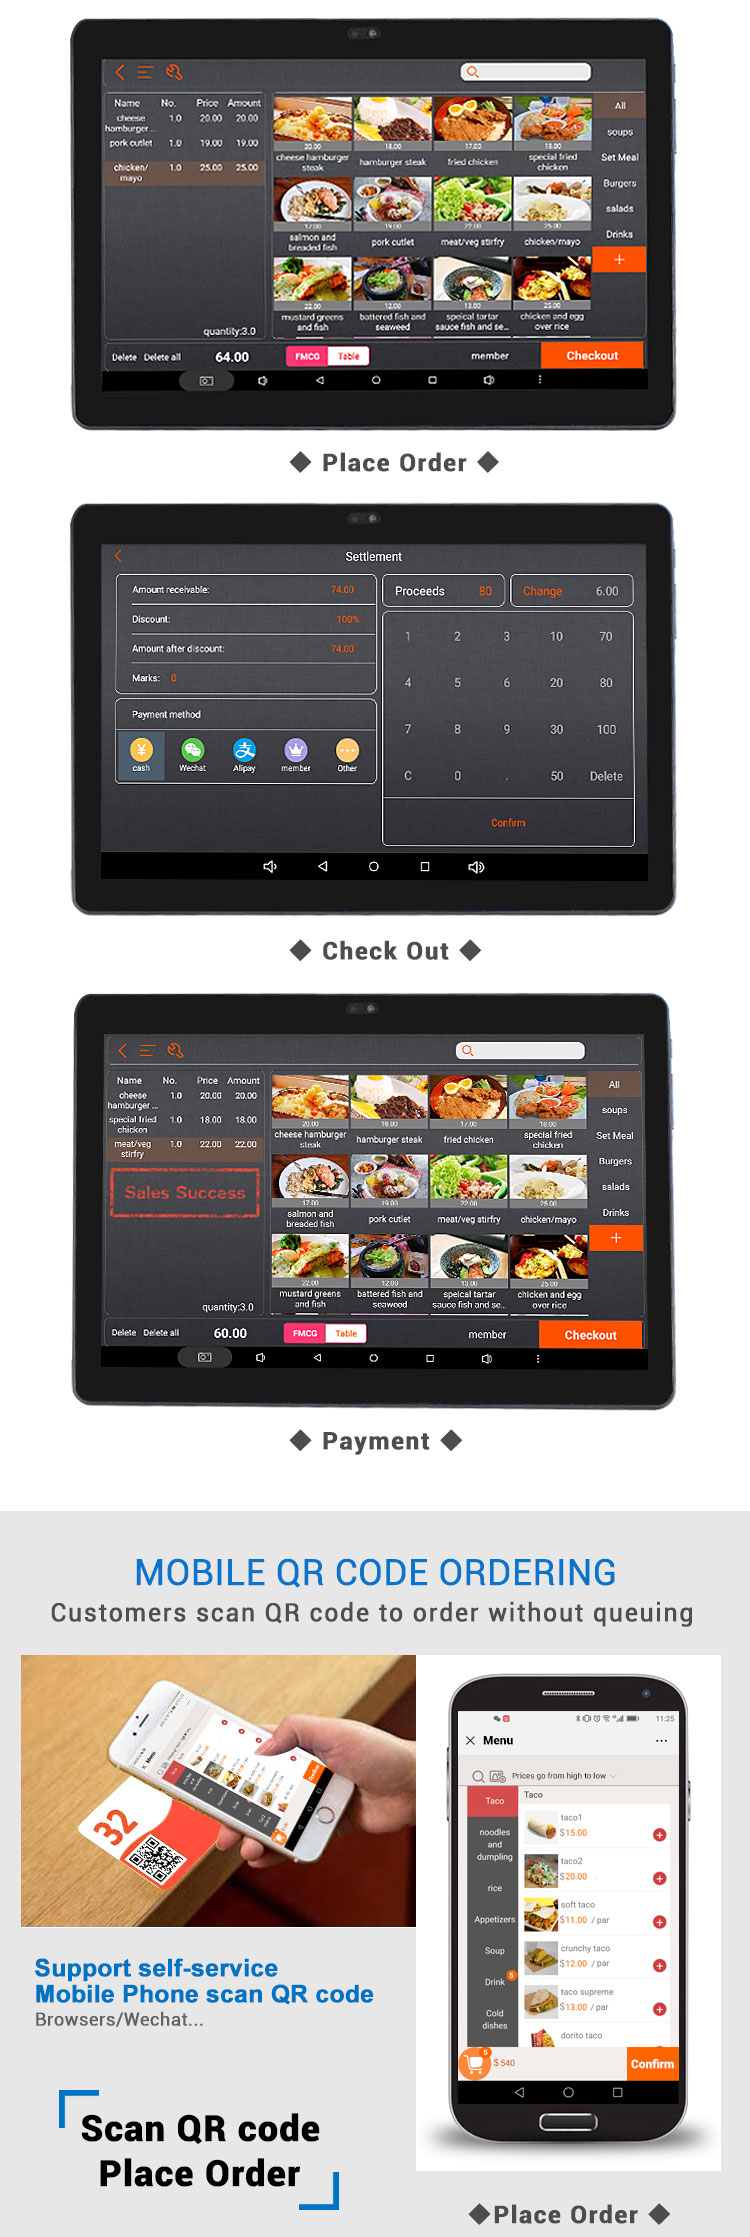 All in one touch screen handheld mobile pos terminal ZK-S6